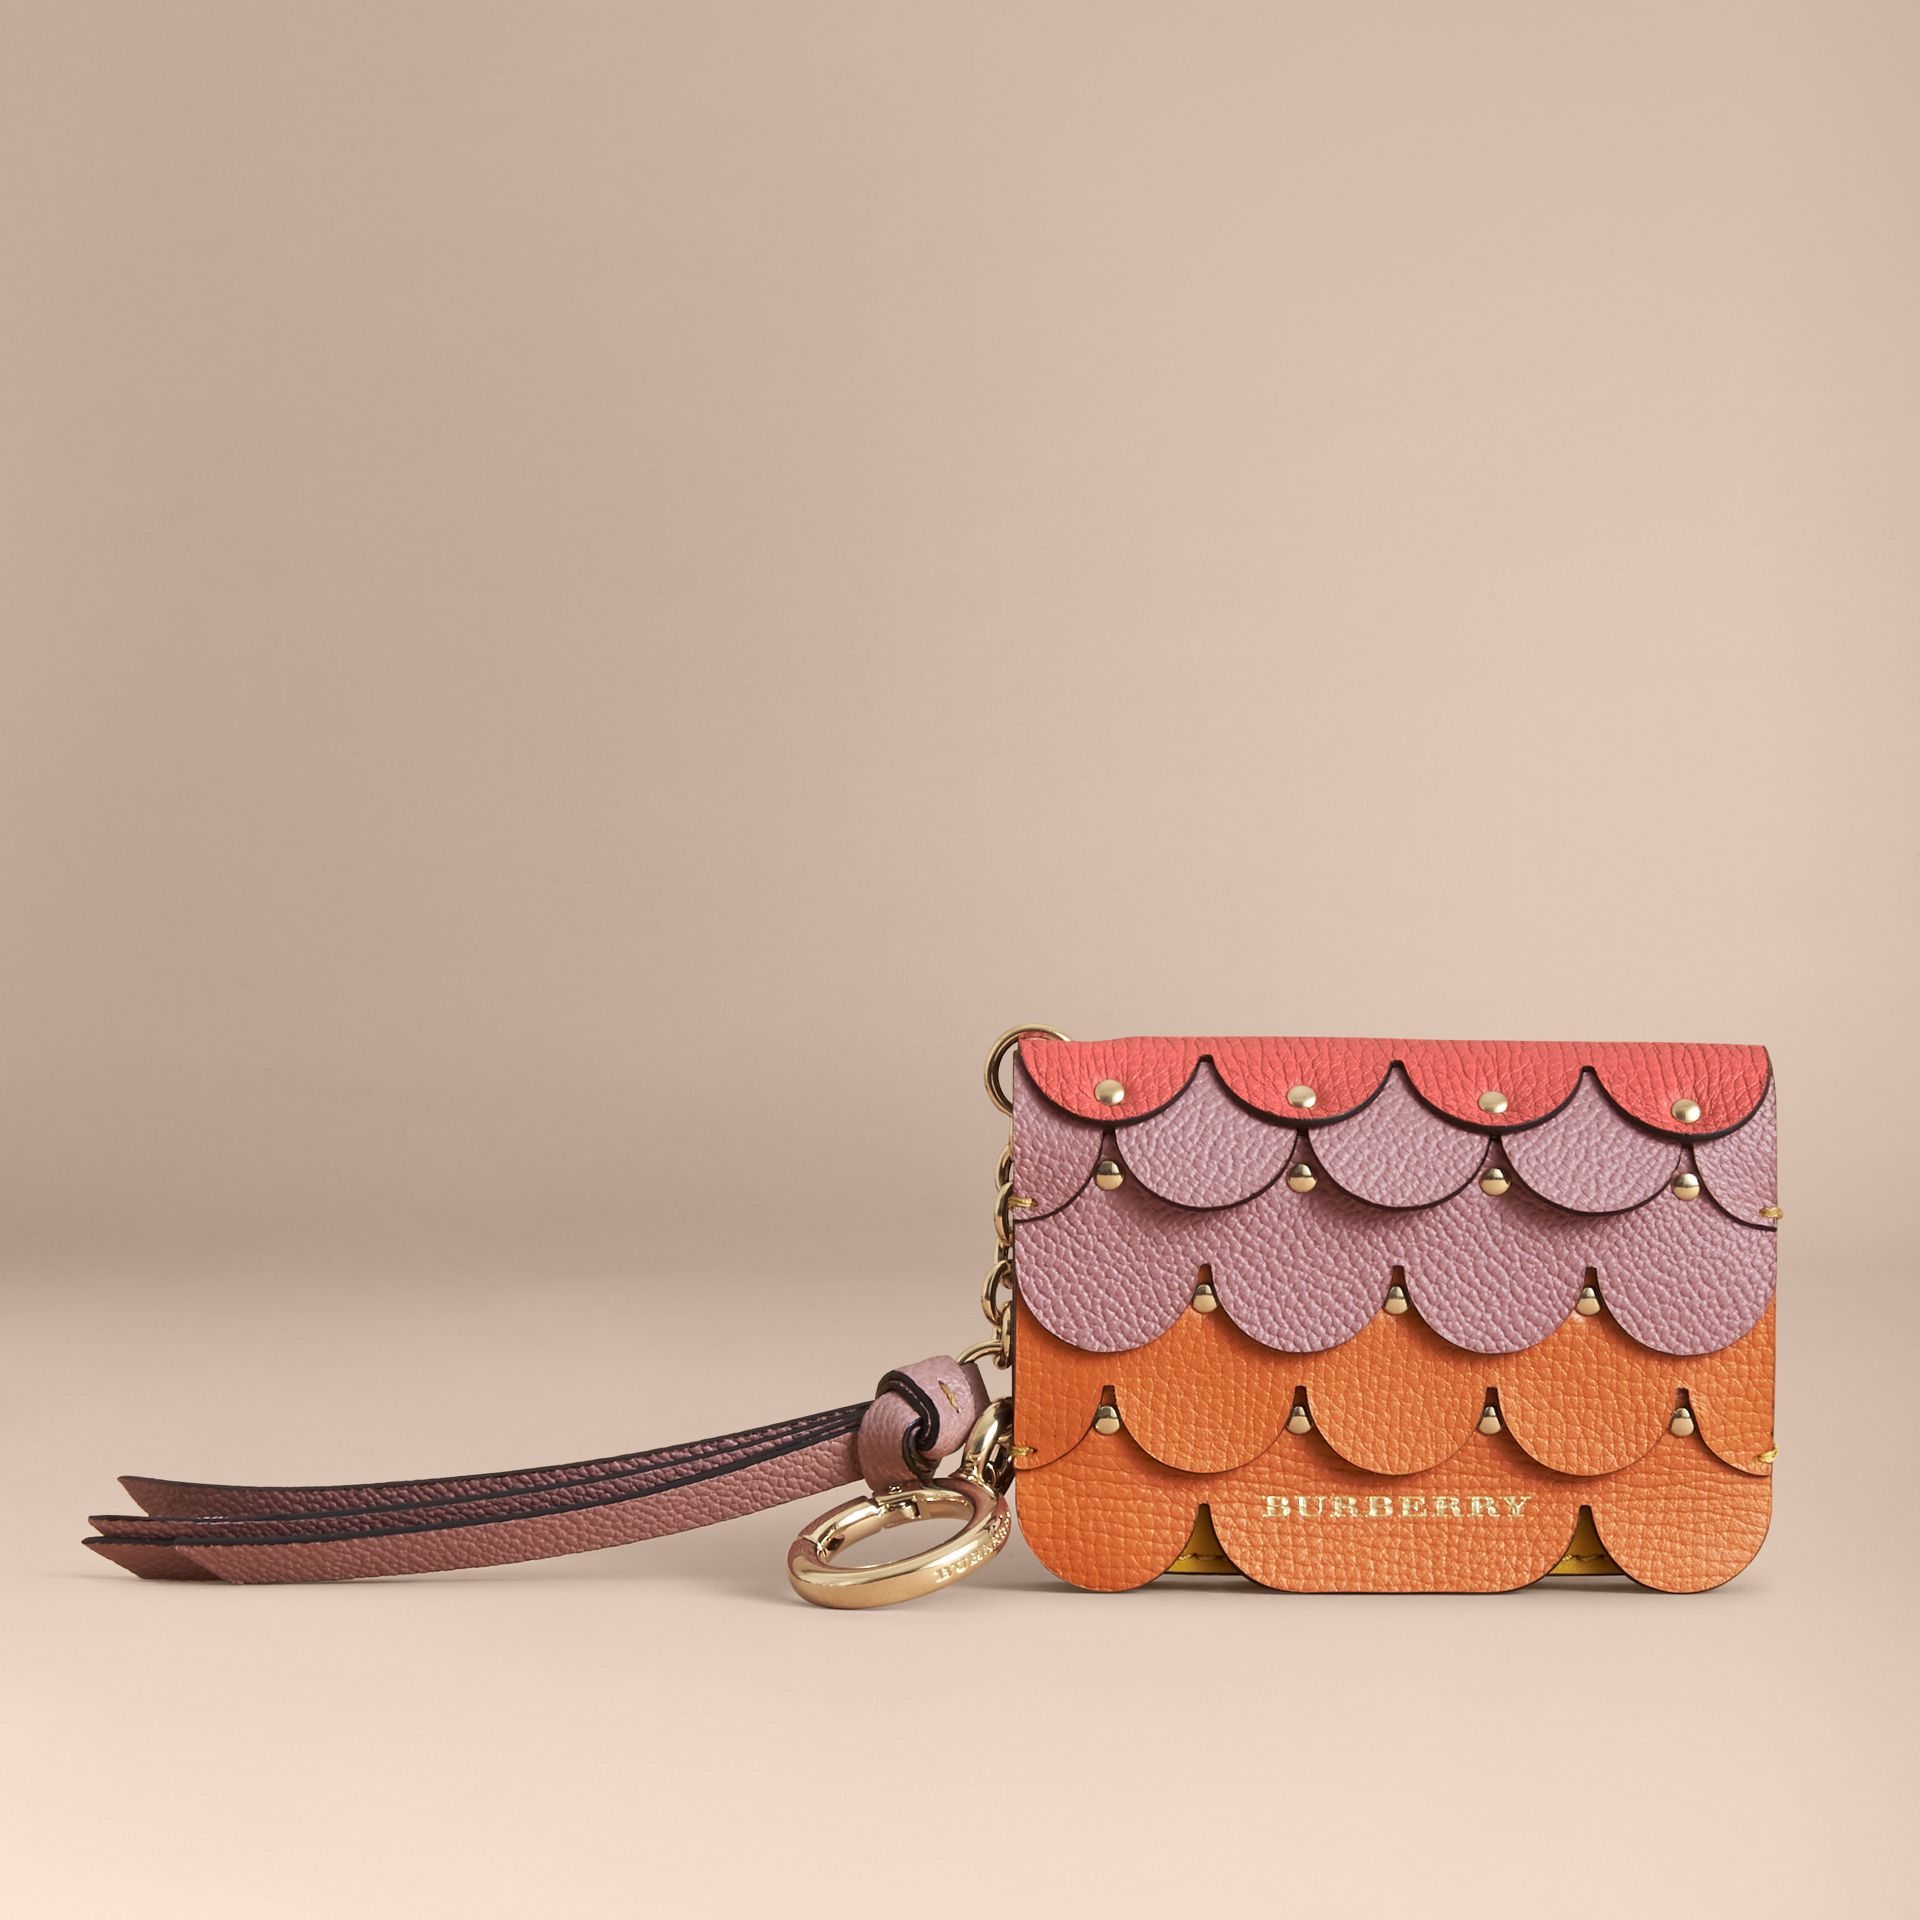 Scalloped Leather Card Case in Bright Straw - Women | Burberry - gallery image 5